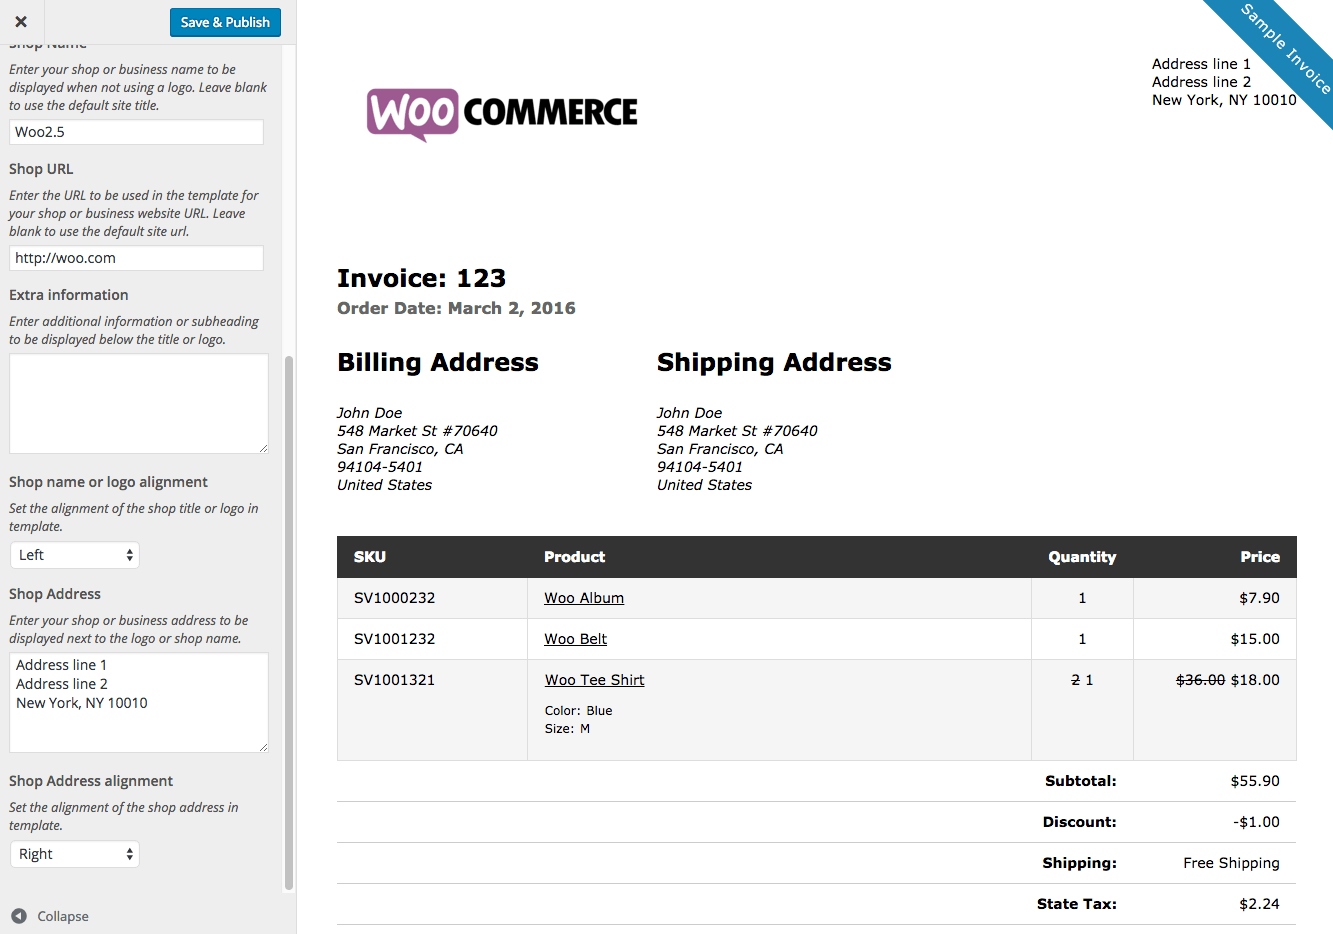 Carsforlessus  Nice Woocommerce Print Invoices Amp Packing Lists  Woocommerce Docs With Exquisite Woocommerce Print Invoices  Packing Lists Customizer With Breathtaking Western Union Money Transfer Receipt Sample Also Shop Receipt Template In Addition Printable Receipts For Daycare And Cheque Payment Receipt Format As Well As Dumpling Receipt Additionally Lic Premium Paid Receipt From Docswoocommercecom With Carsforlessus  Exquisite Woocommerce Print Invoices Amp Packing Lists  Woocommerce Docs With Breathtaking Woocommerce Print Invoices  Packing Lists Customizer And Nice Western Union Money Transfer Receipt Sample Also Shop Receipt Template In Addition Printable Receipts For Daycare From Docswoocommercecom